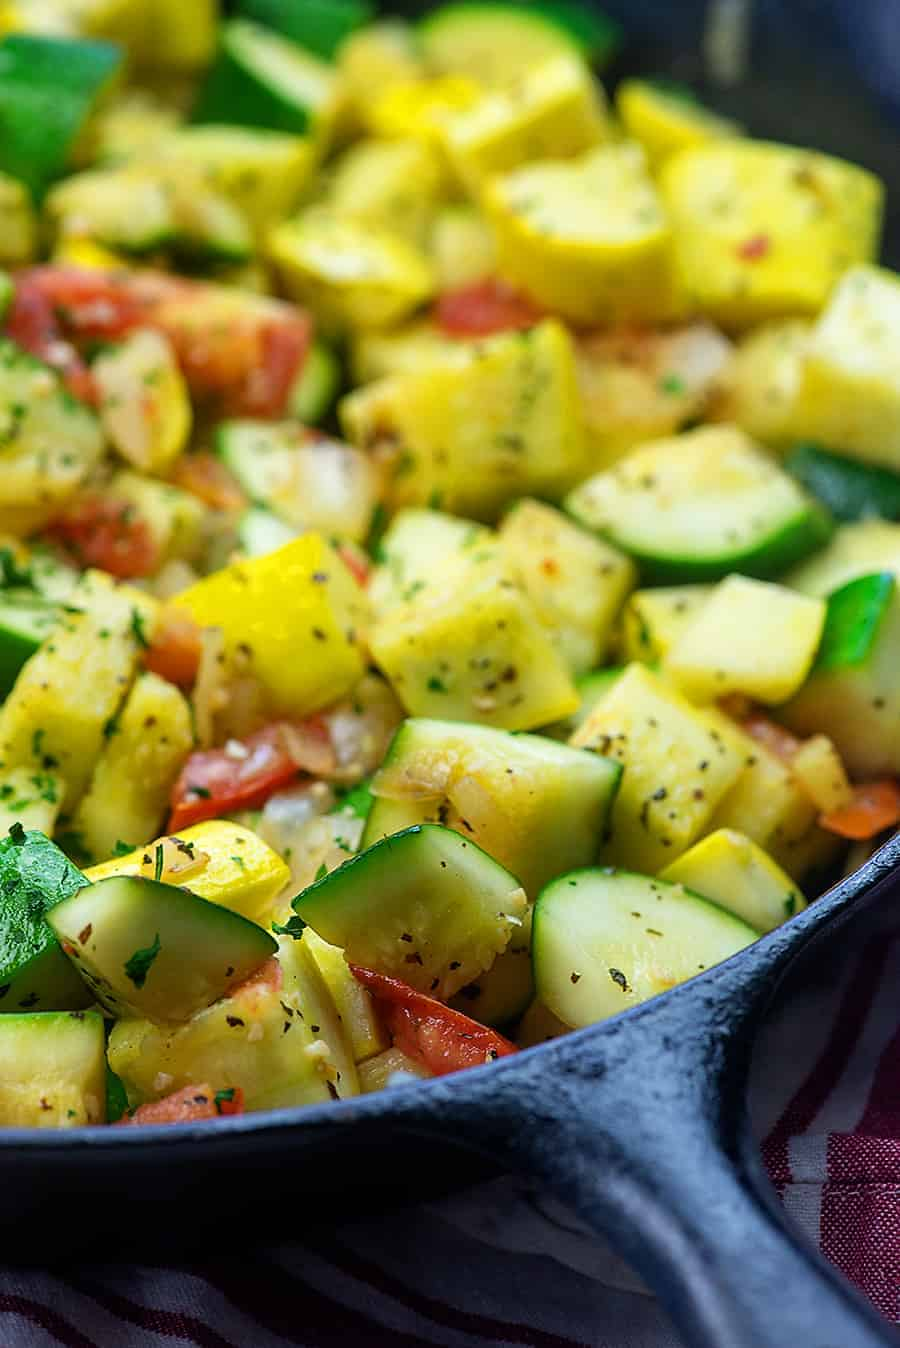 sauteed zucchini and squash in a cast iron skillet